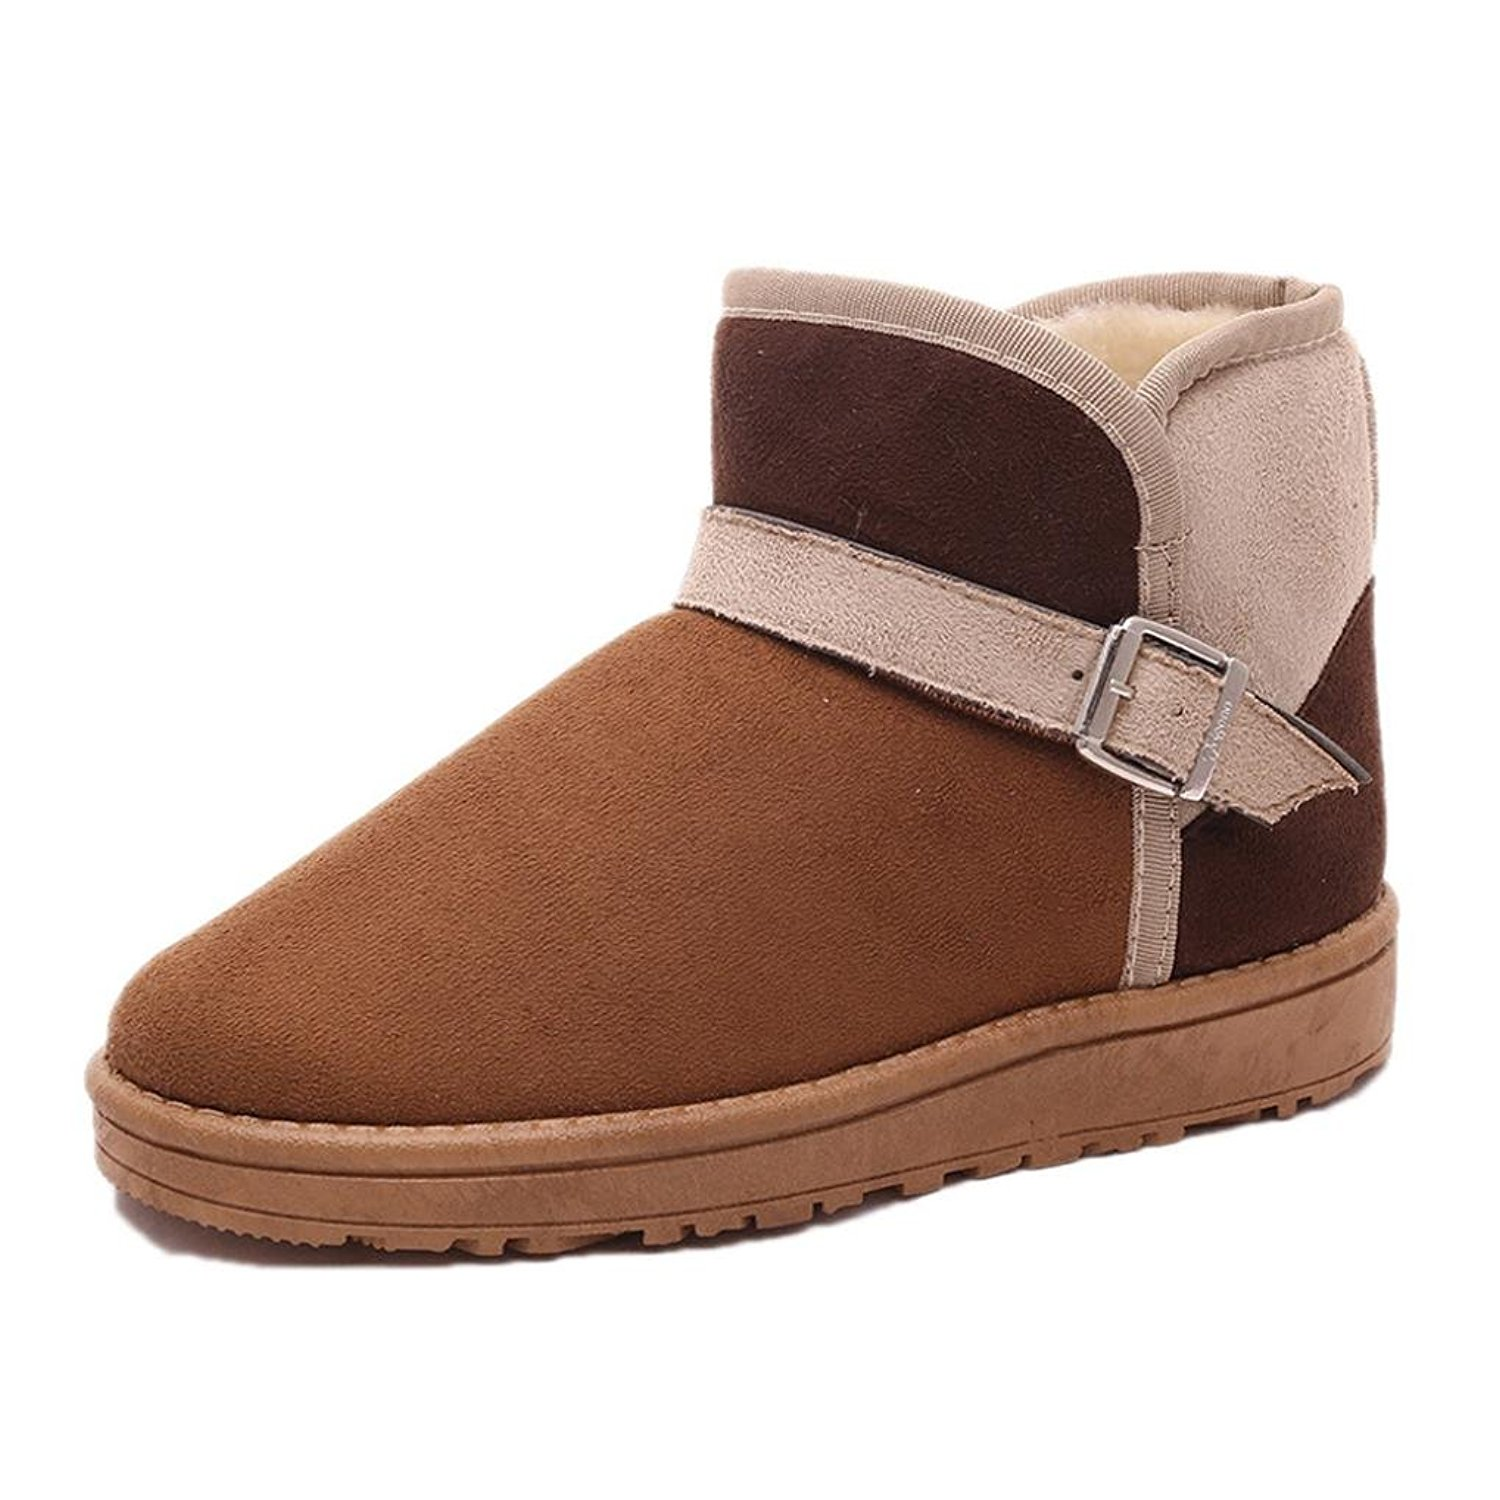 DEESEE(TM) Ladies Women Boots Flat Winter Warm Shoes Short Snow Boots (US 7, Brown)